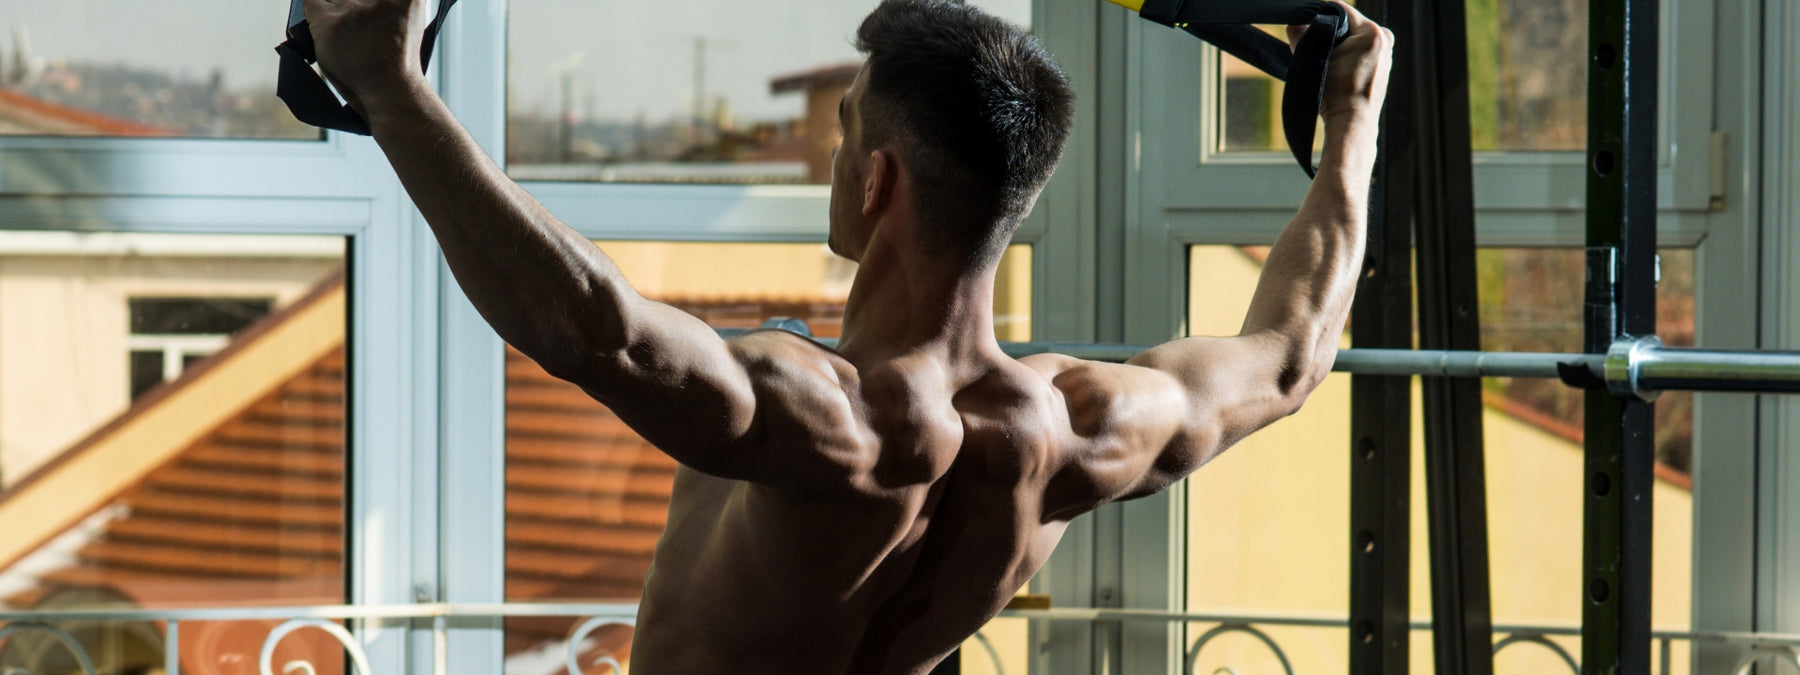 7 Rhomboid Exercises You Should Try